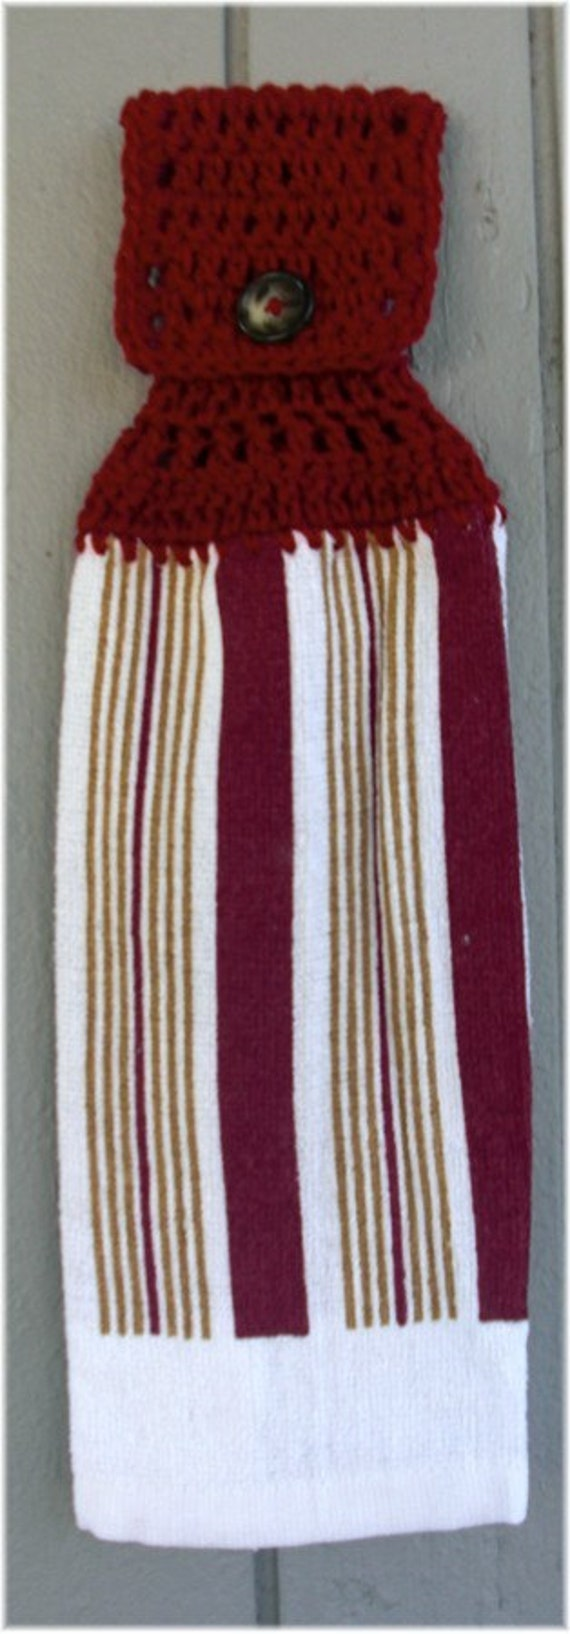 Hanging Kitchen Towel White with Maroon and Gold Stripes